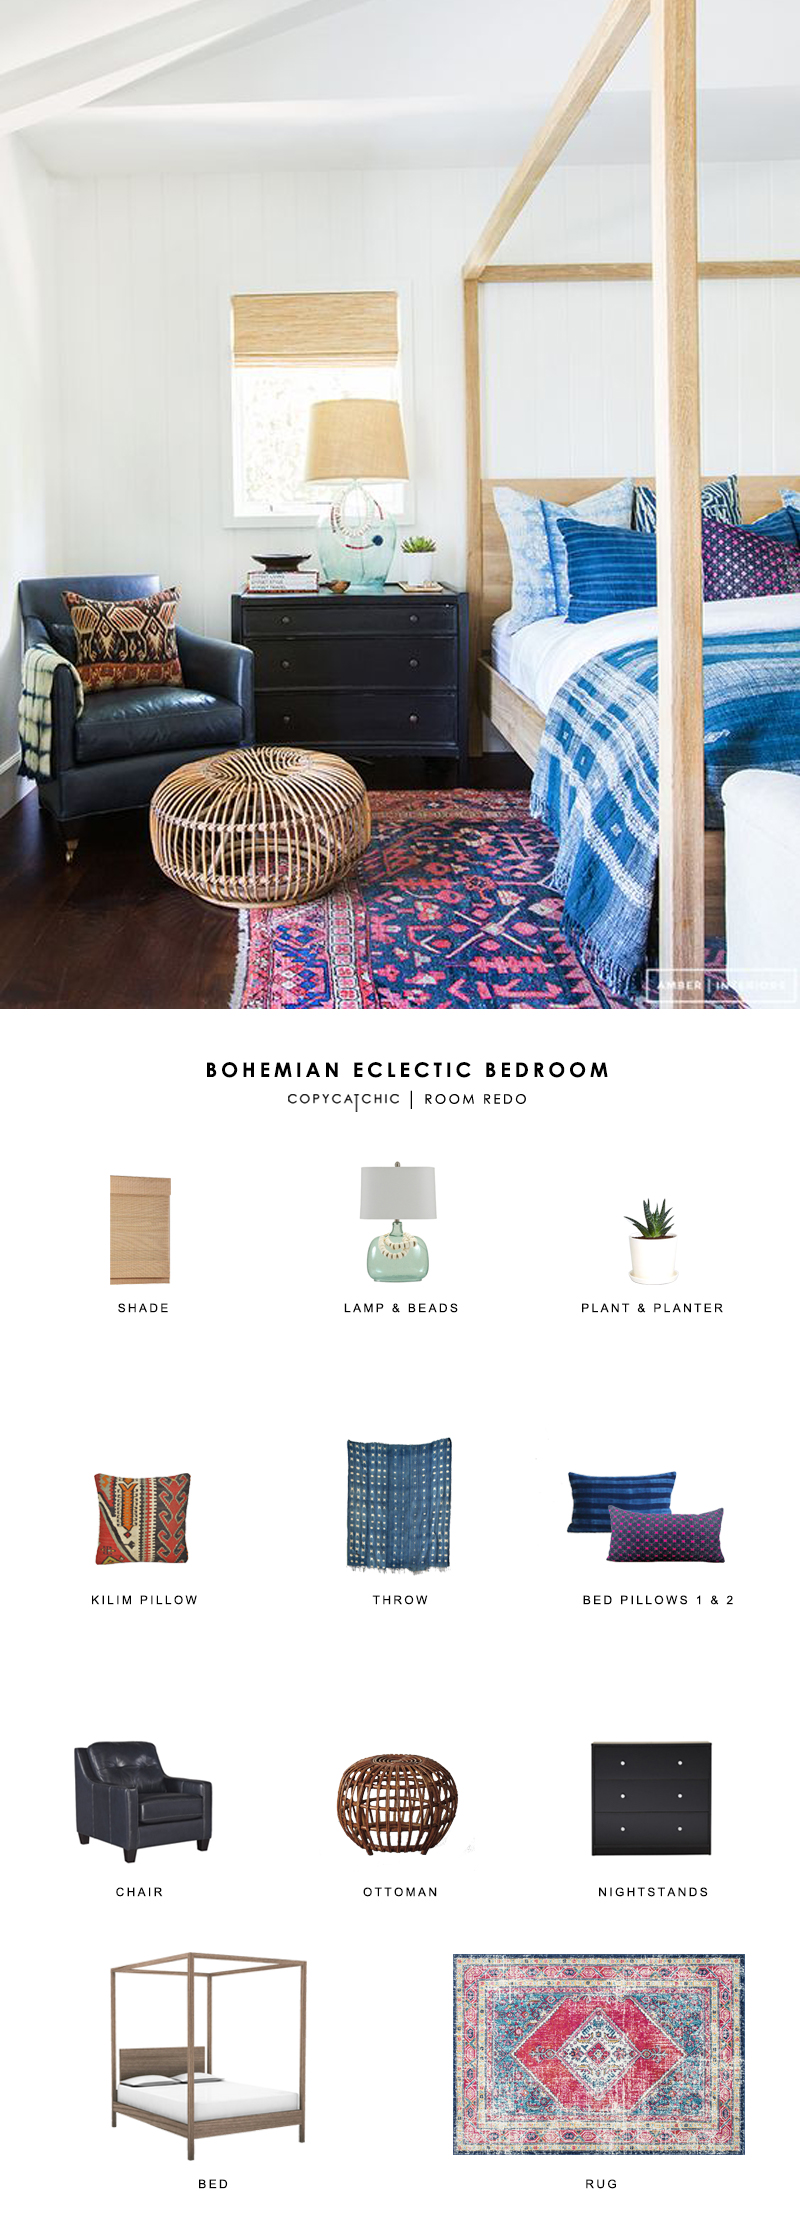 A gorgeous indigo boho eclectic bedroom designed by Amber Interiors gets recreated for less by copycatchic luxe living for less budget home decor and design